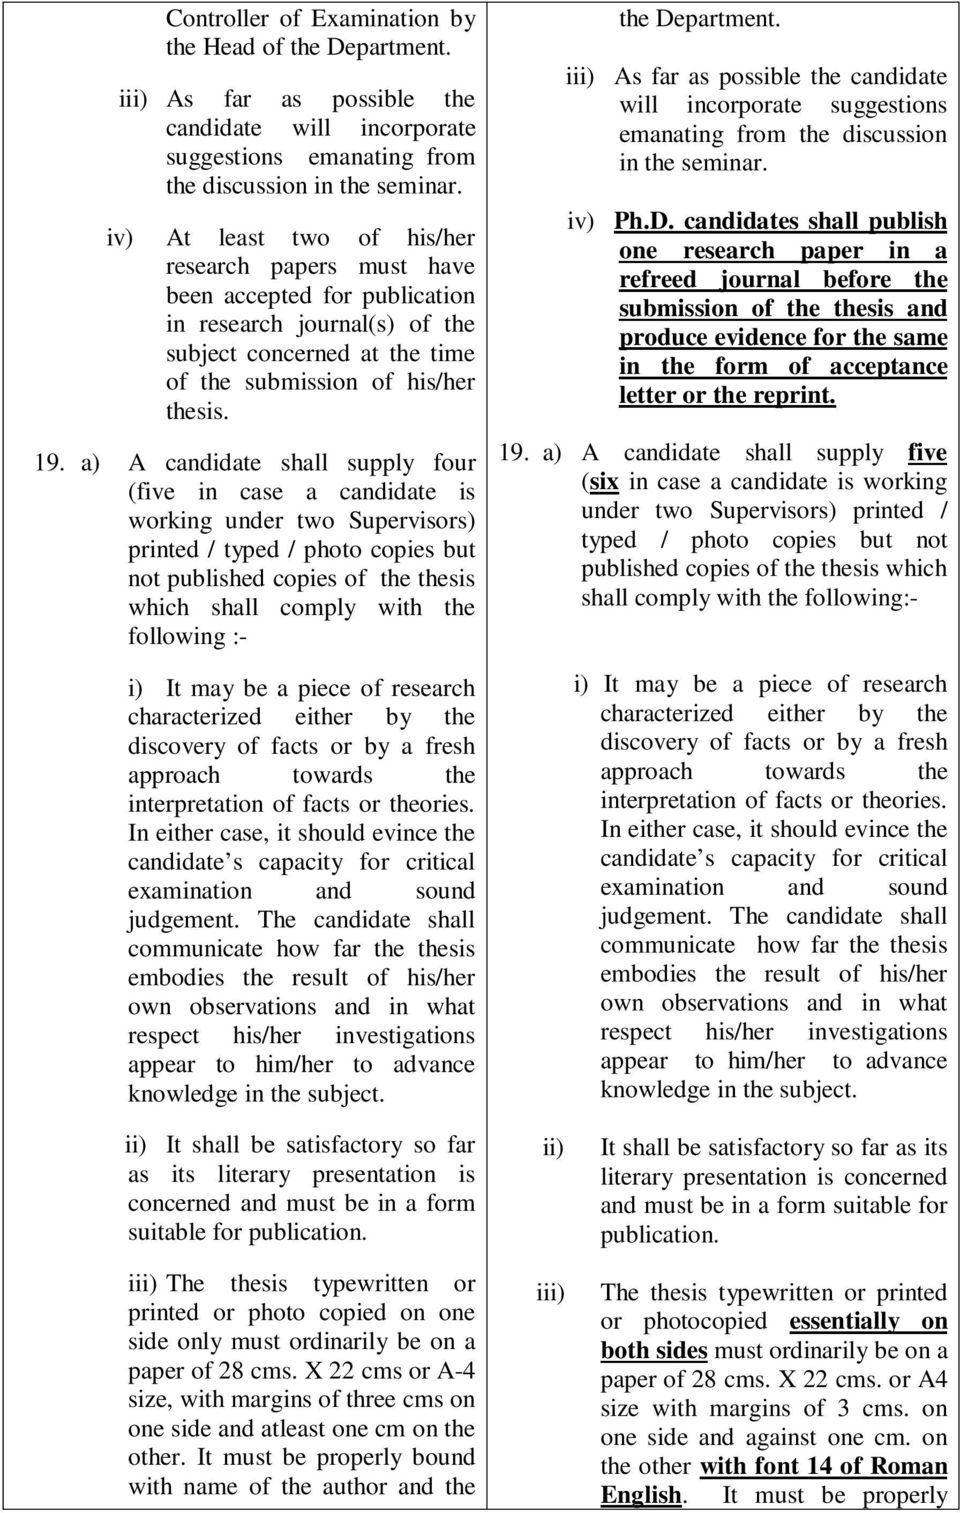 a) A candidate shall supply four (five in case a candidate is working under two Supervisors) printed / typed / photo copies but not published copies of the thesis which shall comply with the